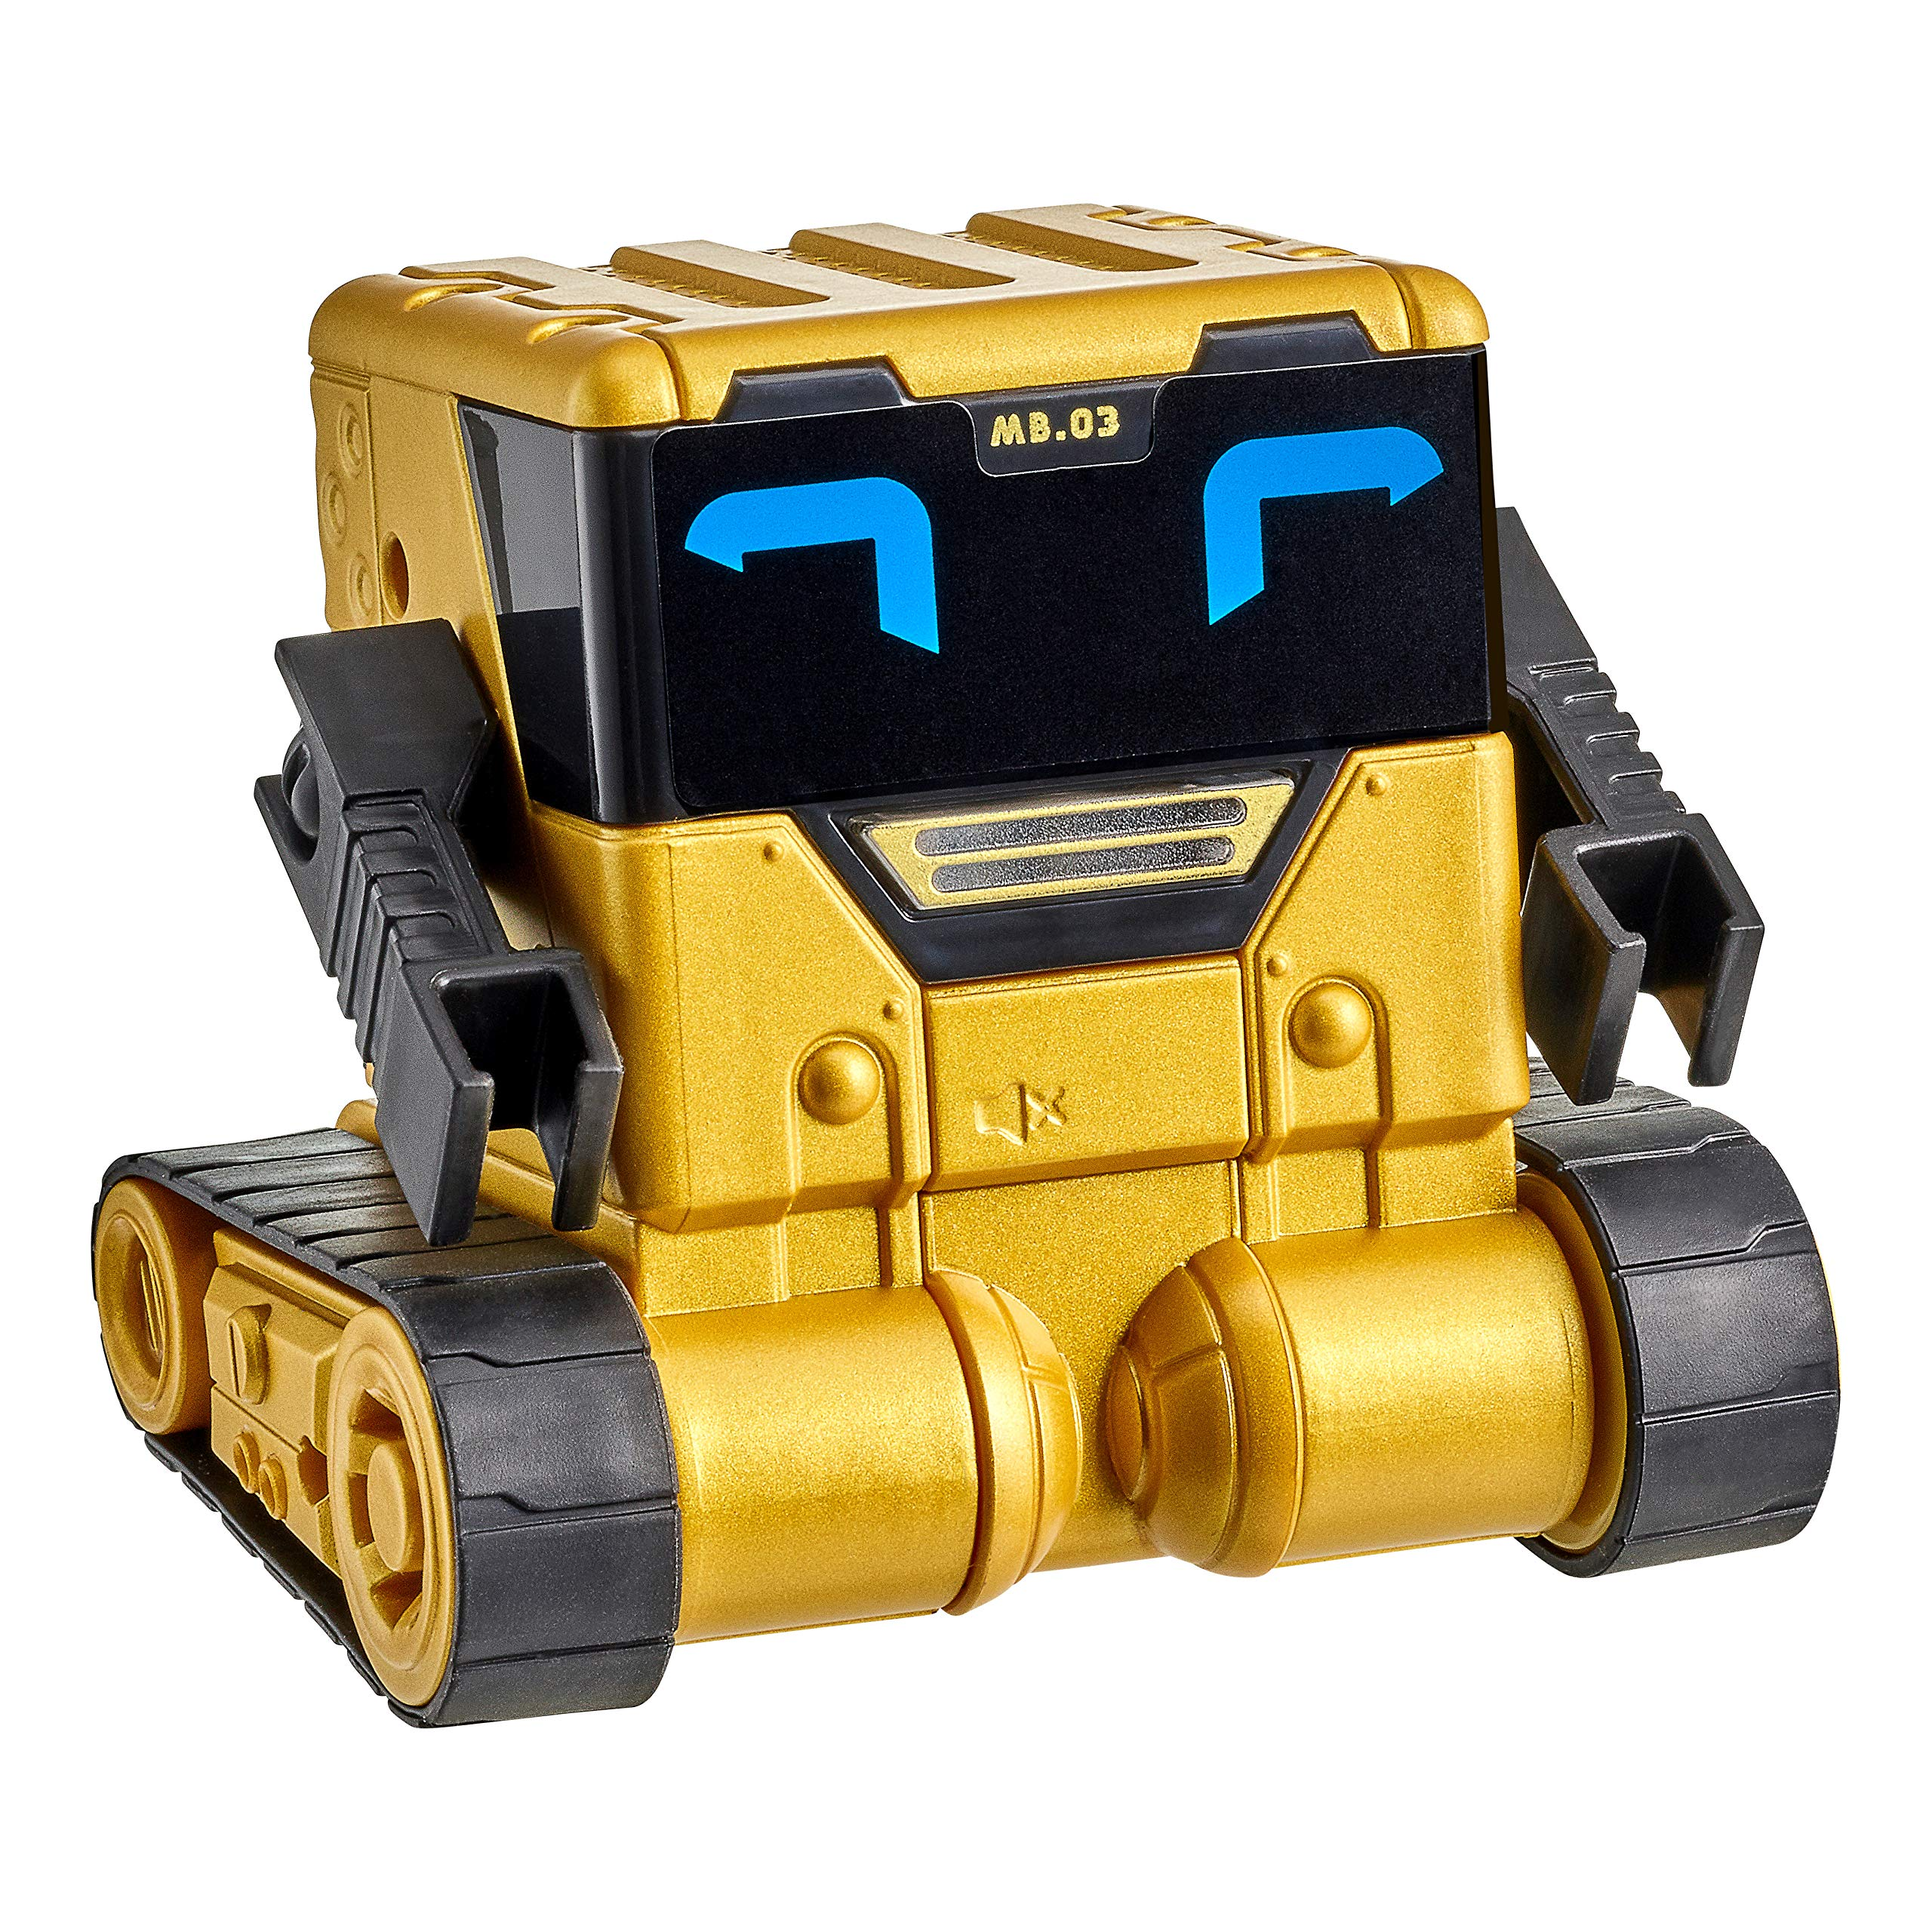 Really RAD Robots Built f Electronic Remote Control Robot with Voice Command